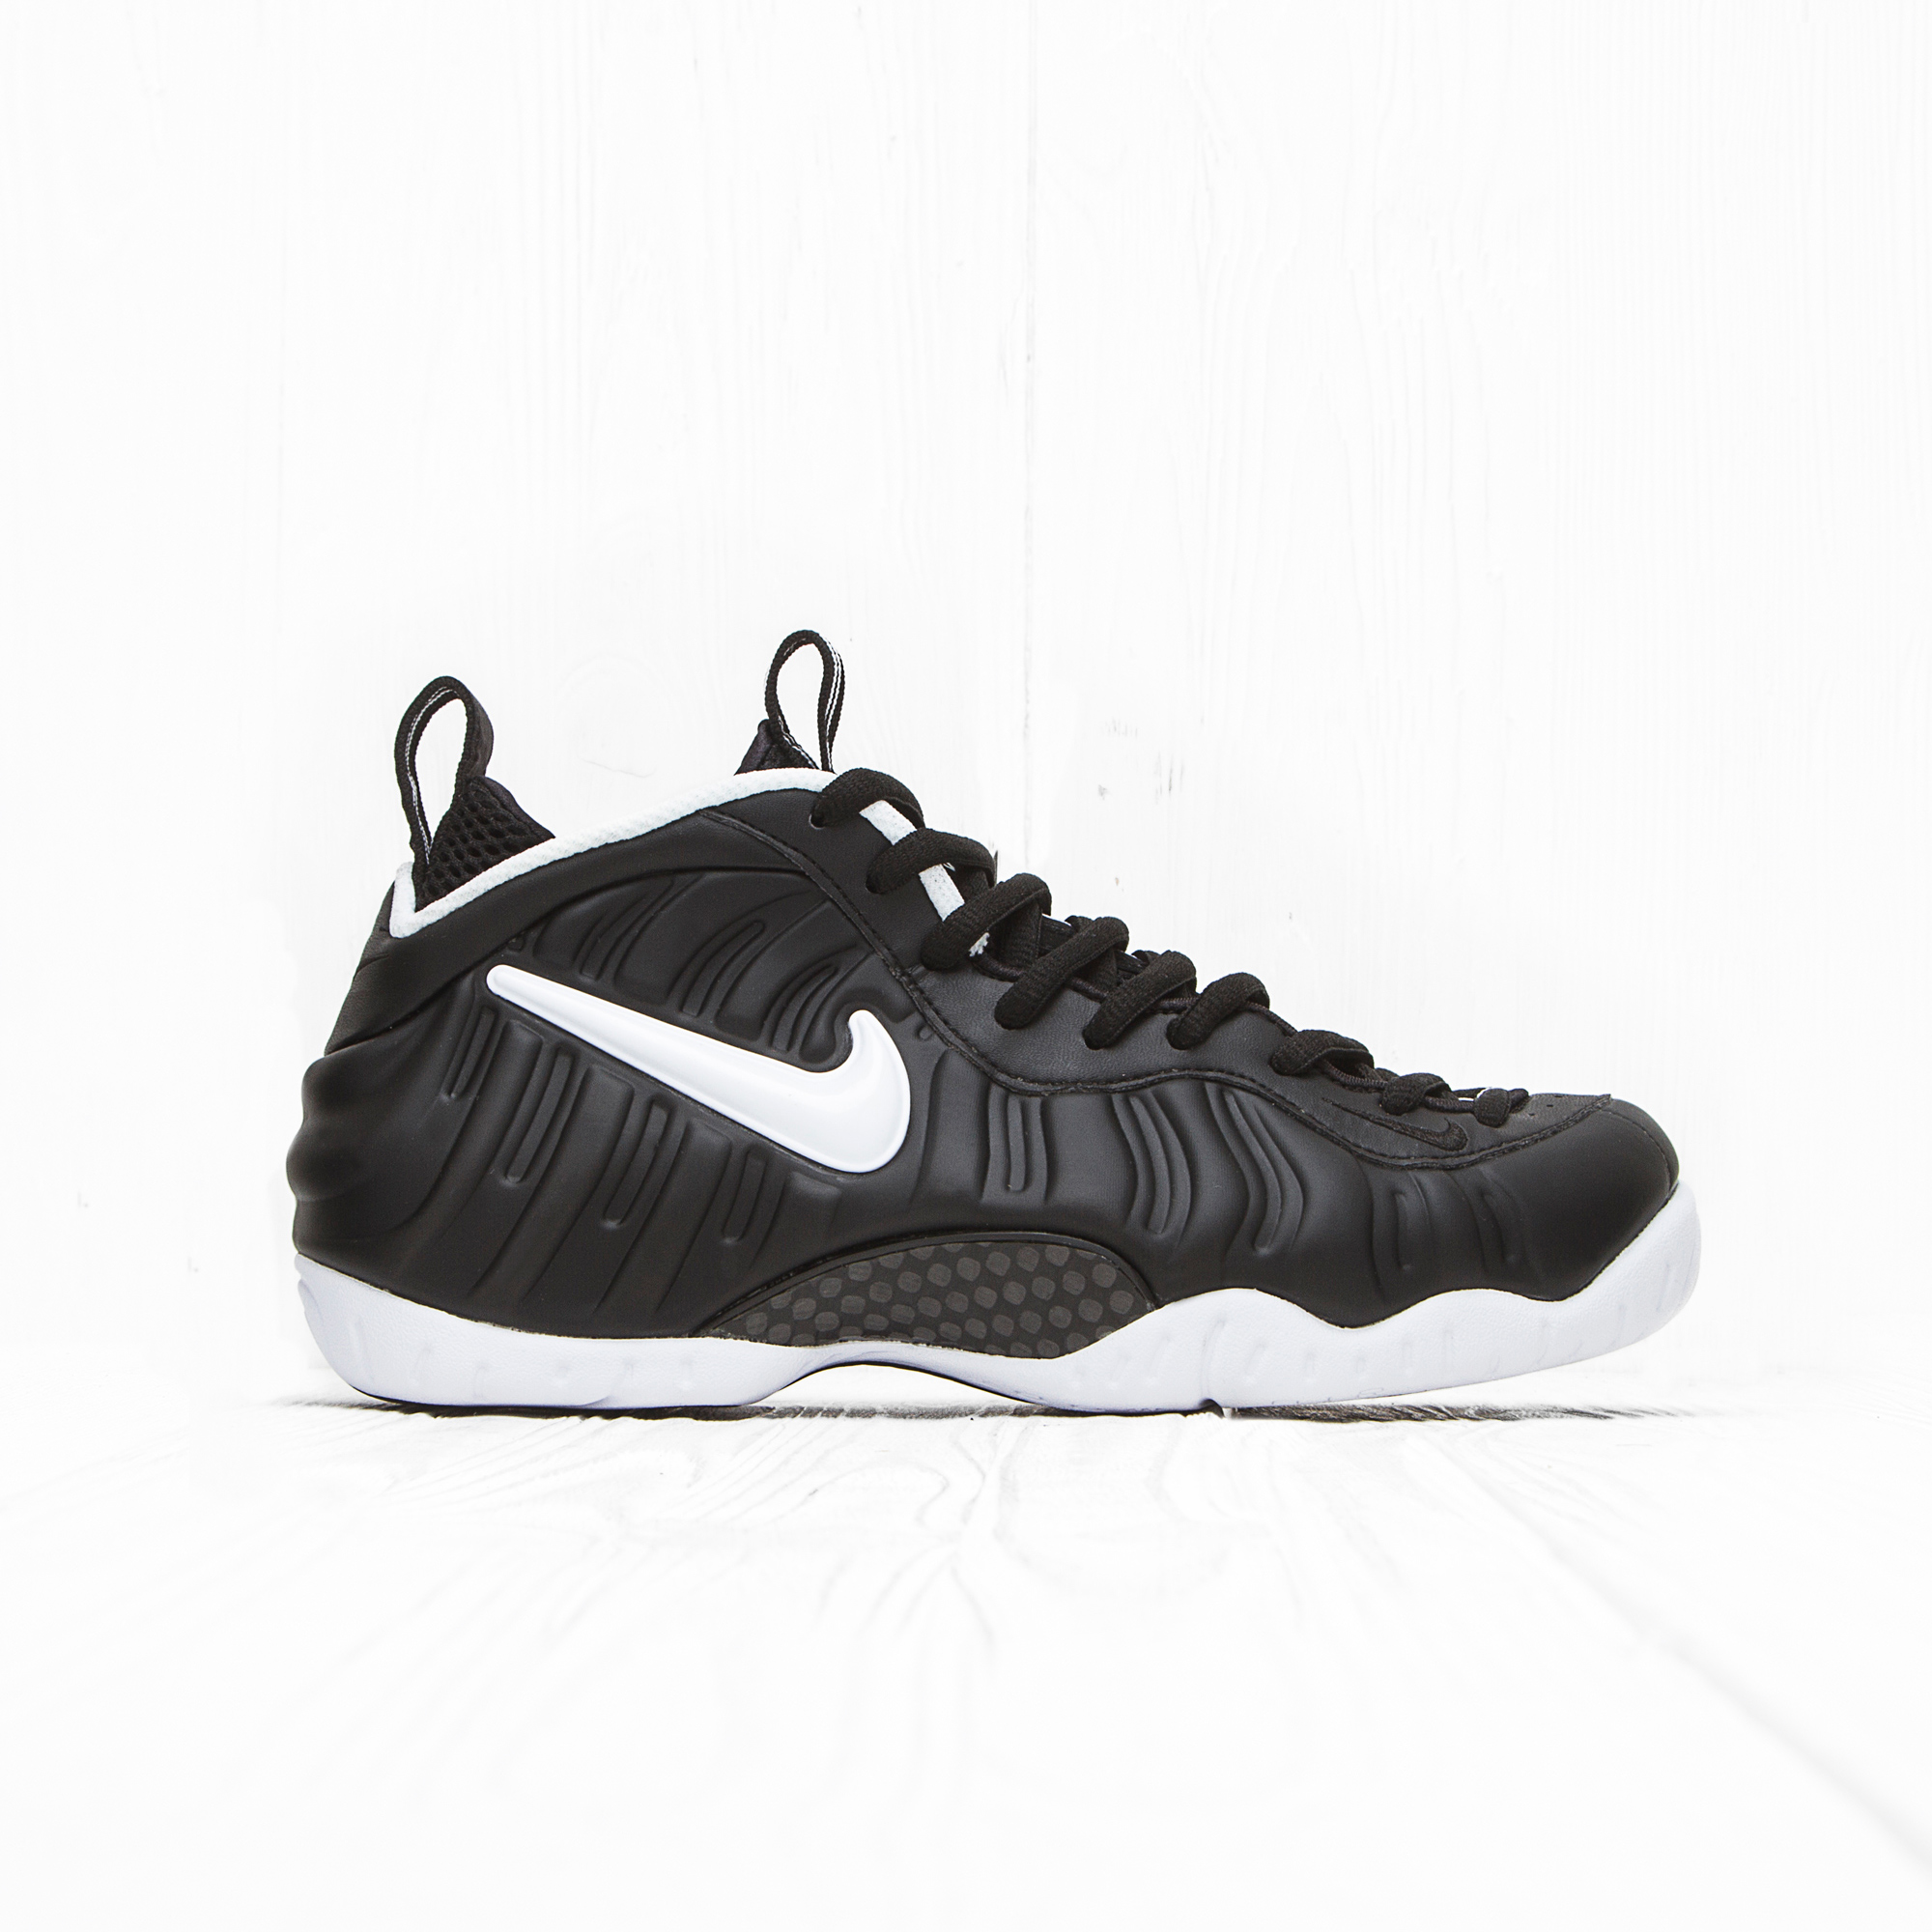 Кроссовки Nike AIR FOAMPOSITE PRO Black/White-Black